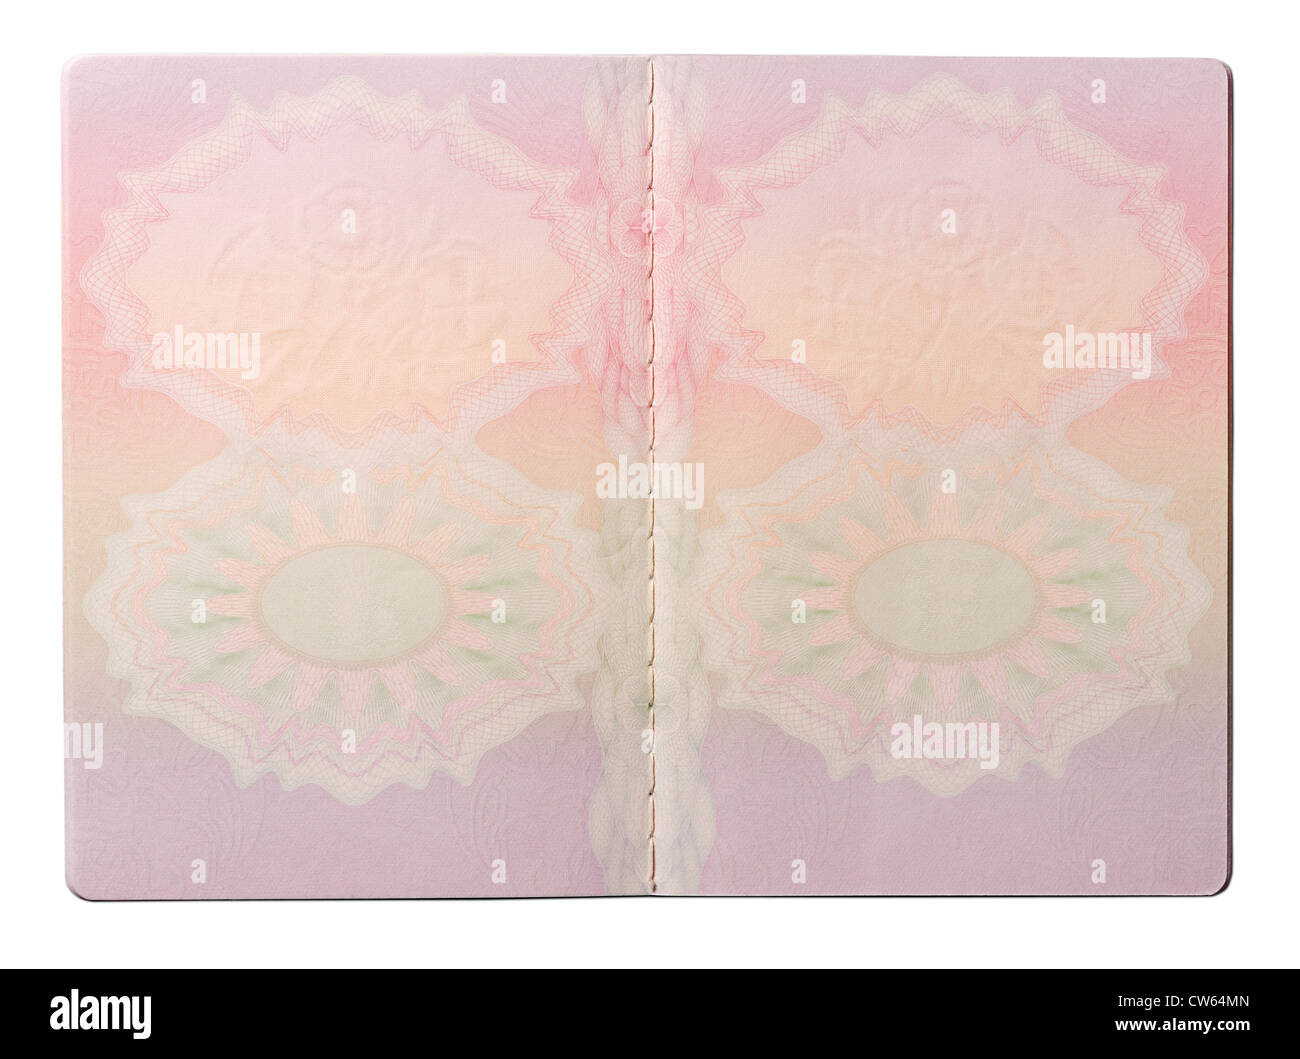 Blank UK passport pages Stock Photo, Royalty Free Image ...